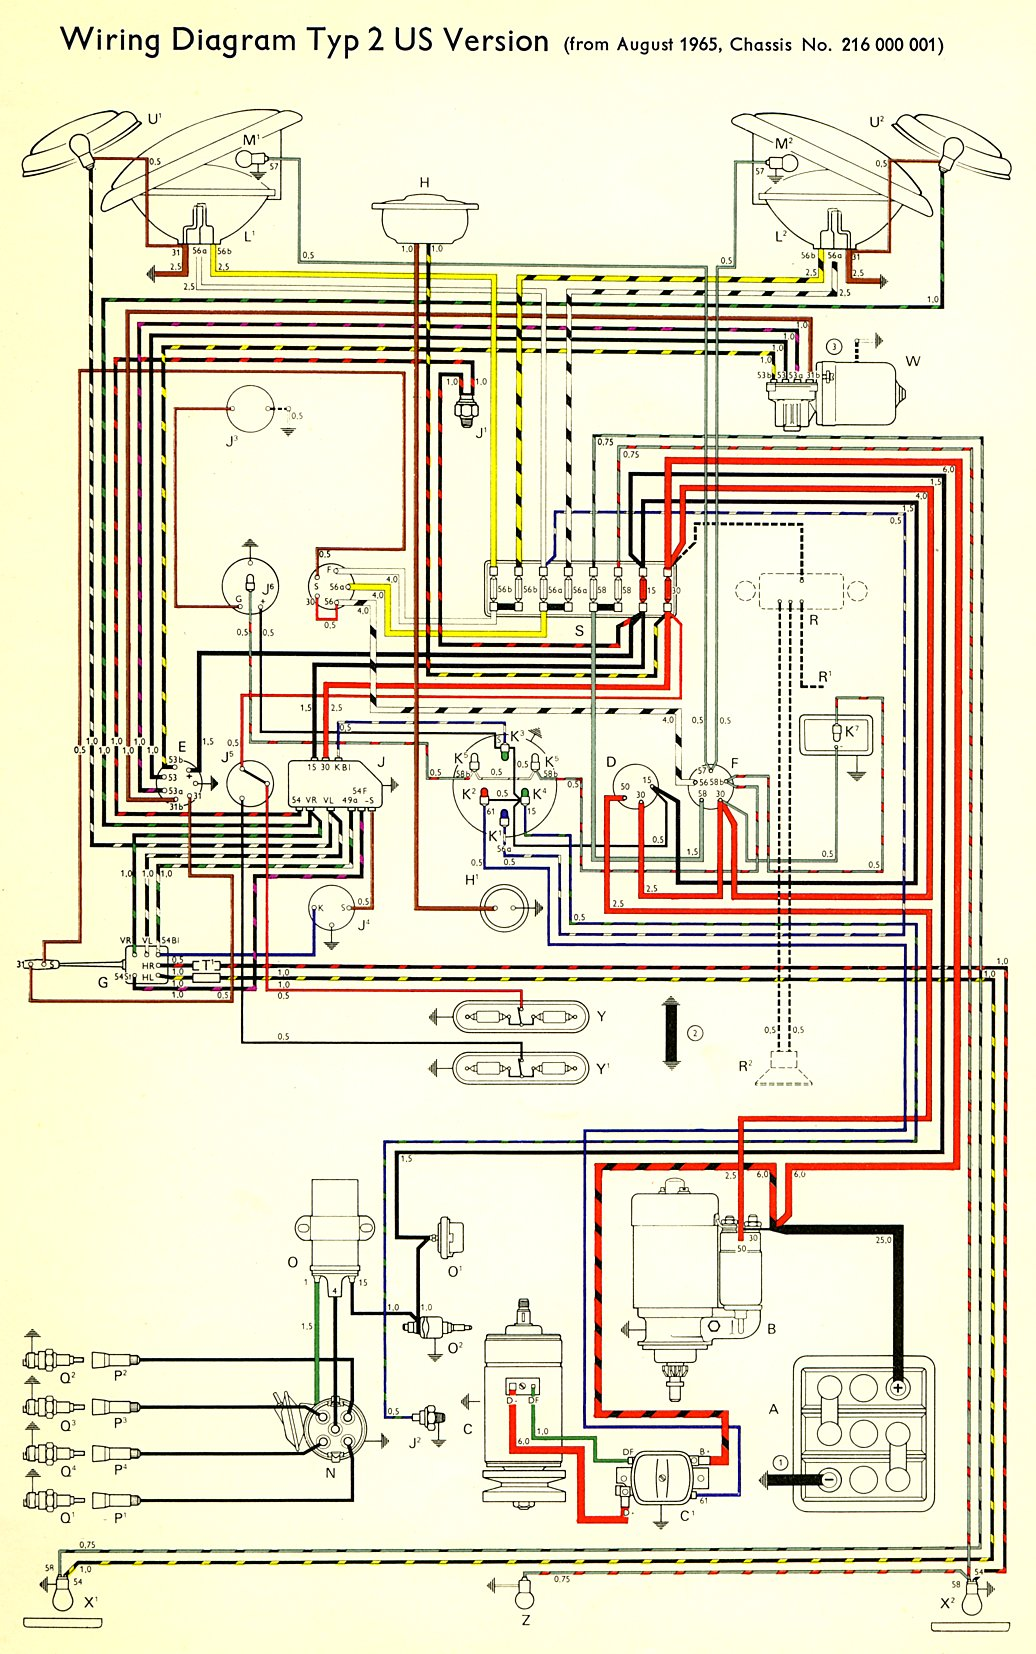 bus_66_USA 1966 bus wiring diagram (usa) thegoldenbug com Volkswagen Type 2 Wiring Harness at gsmx.co